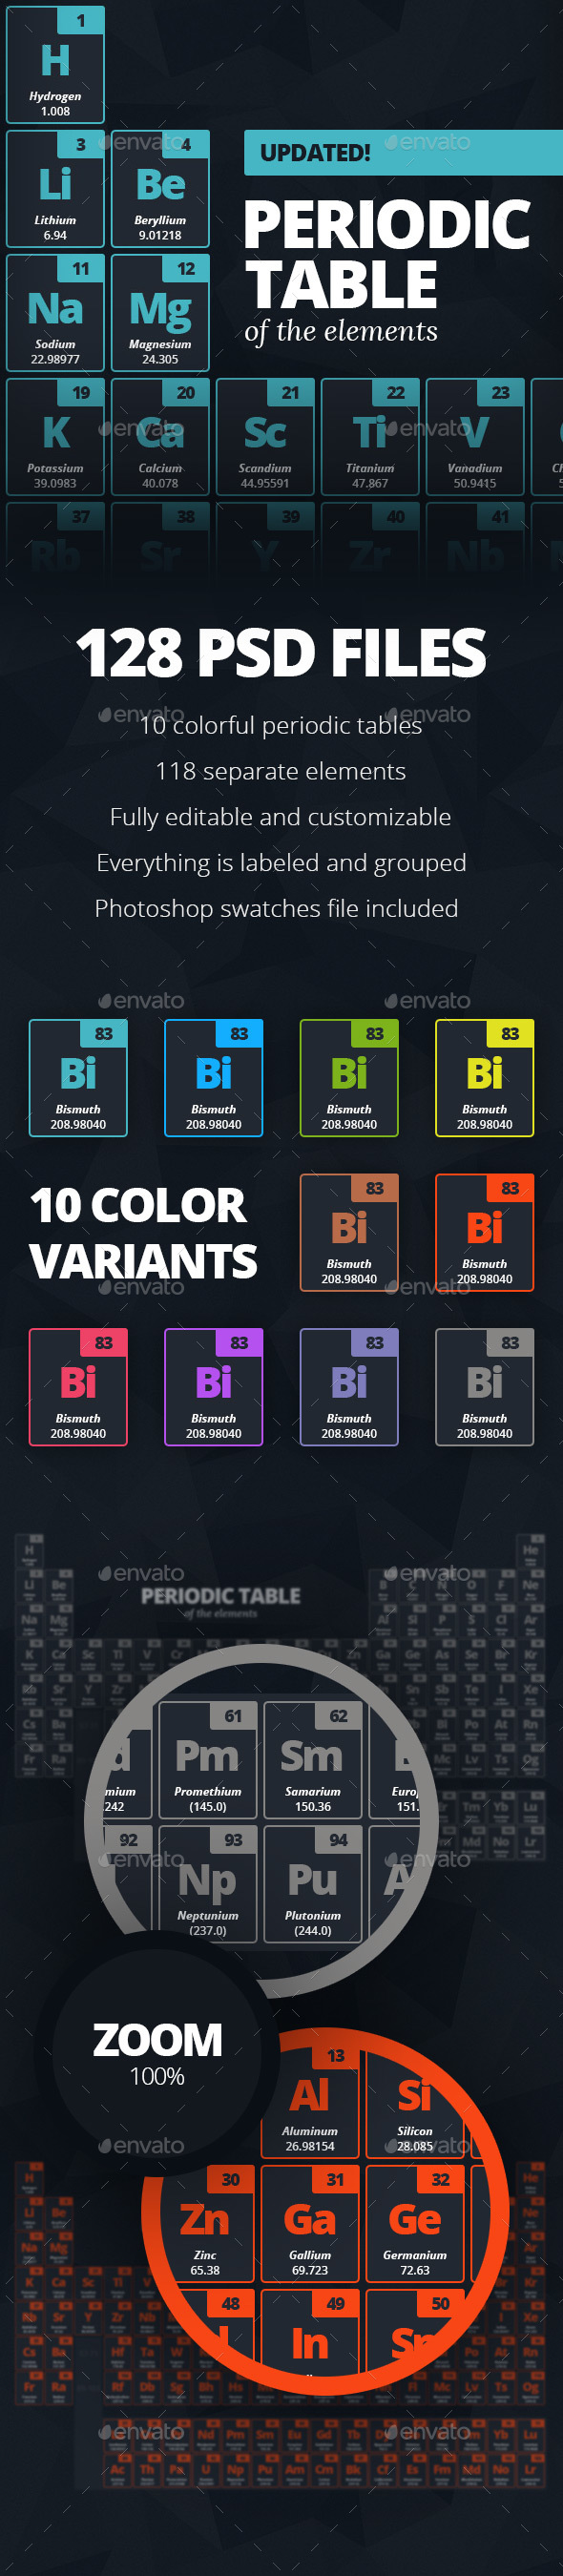 Periodic Table of the Elements - Education Backgrounds